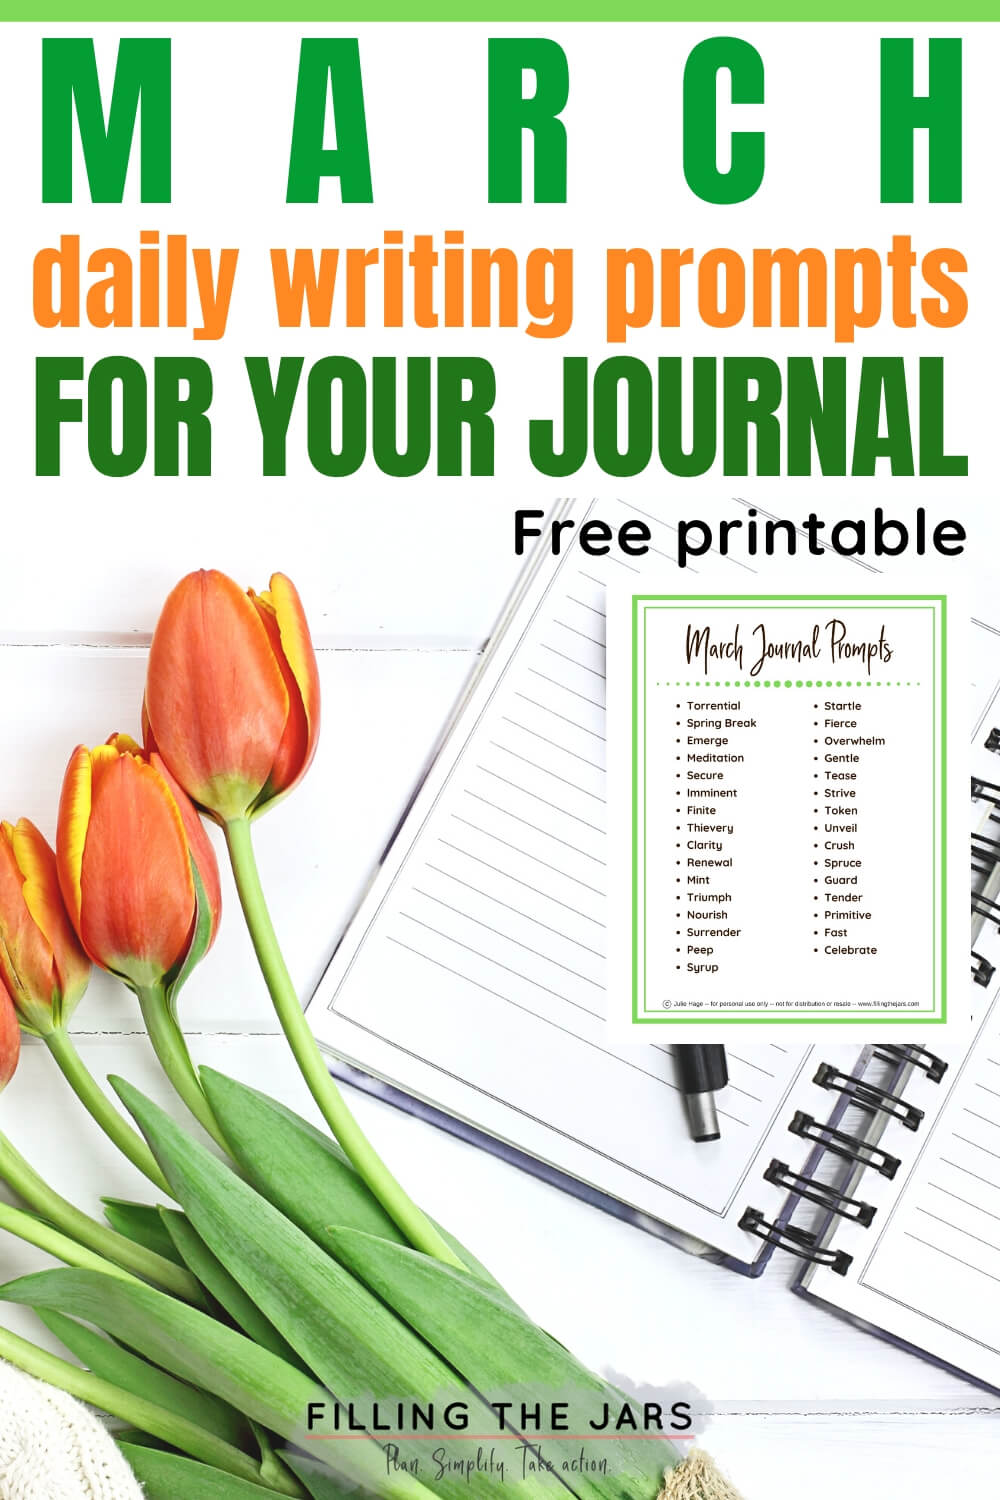 orange tulips and open journal on white background with text headline March journal prompts